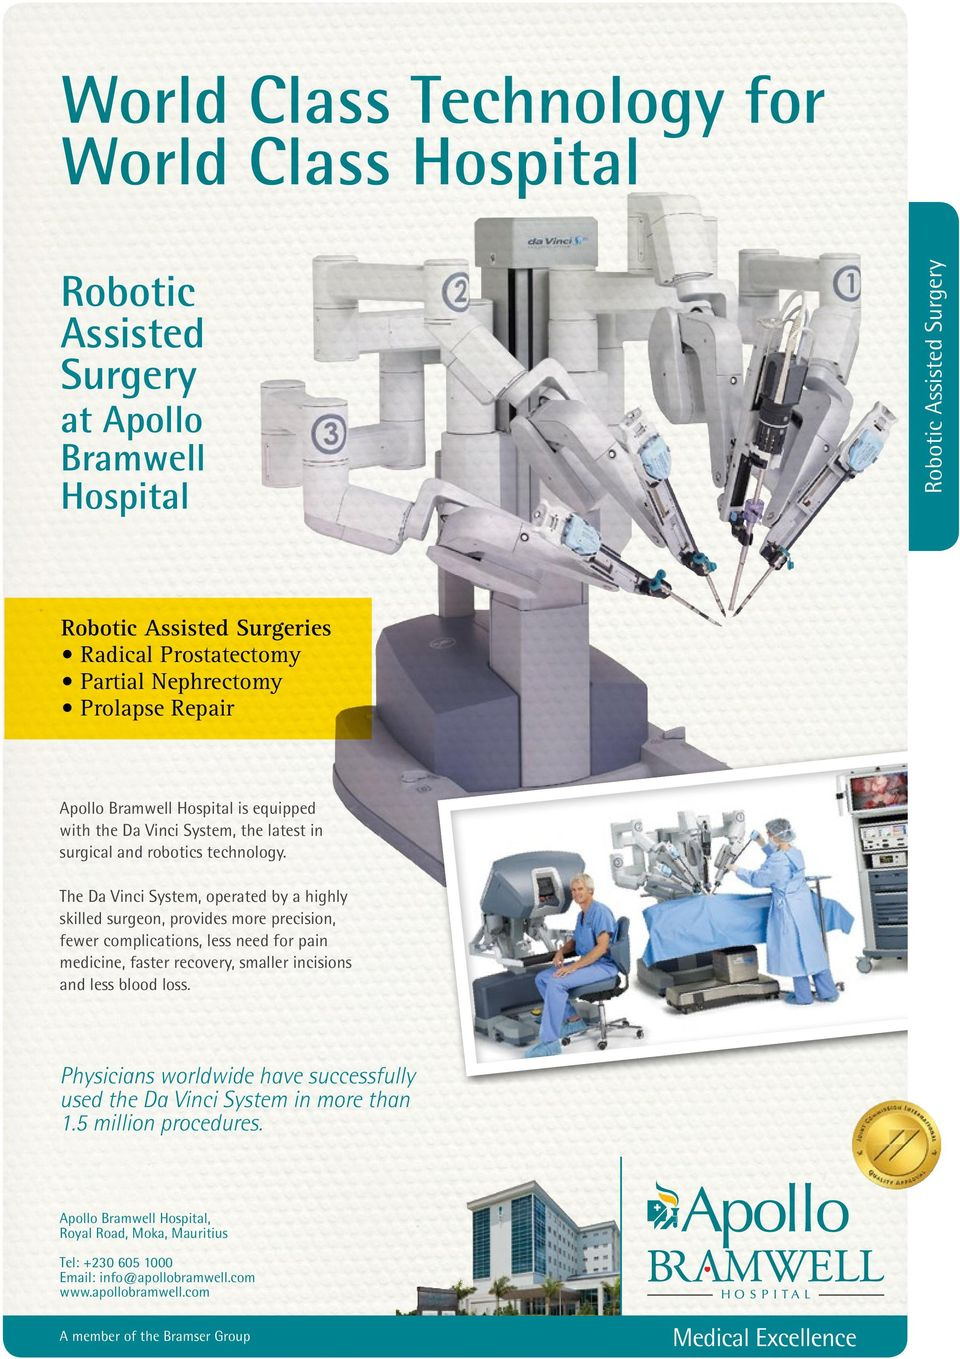 The Da Vinci System, operated by a highly skilled surgeon, provides more precision, fewer complications, less need for pain medicine, faster recovery, smaller incisions and less blood loss.